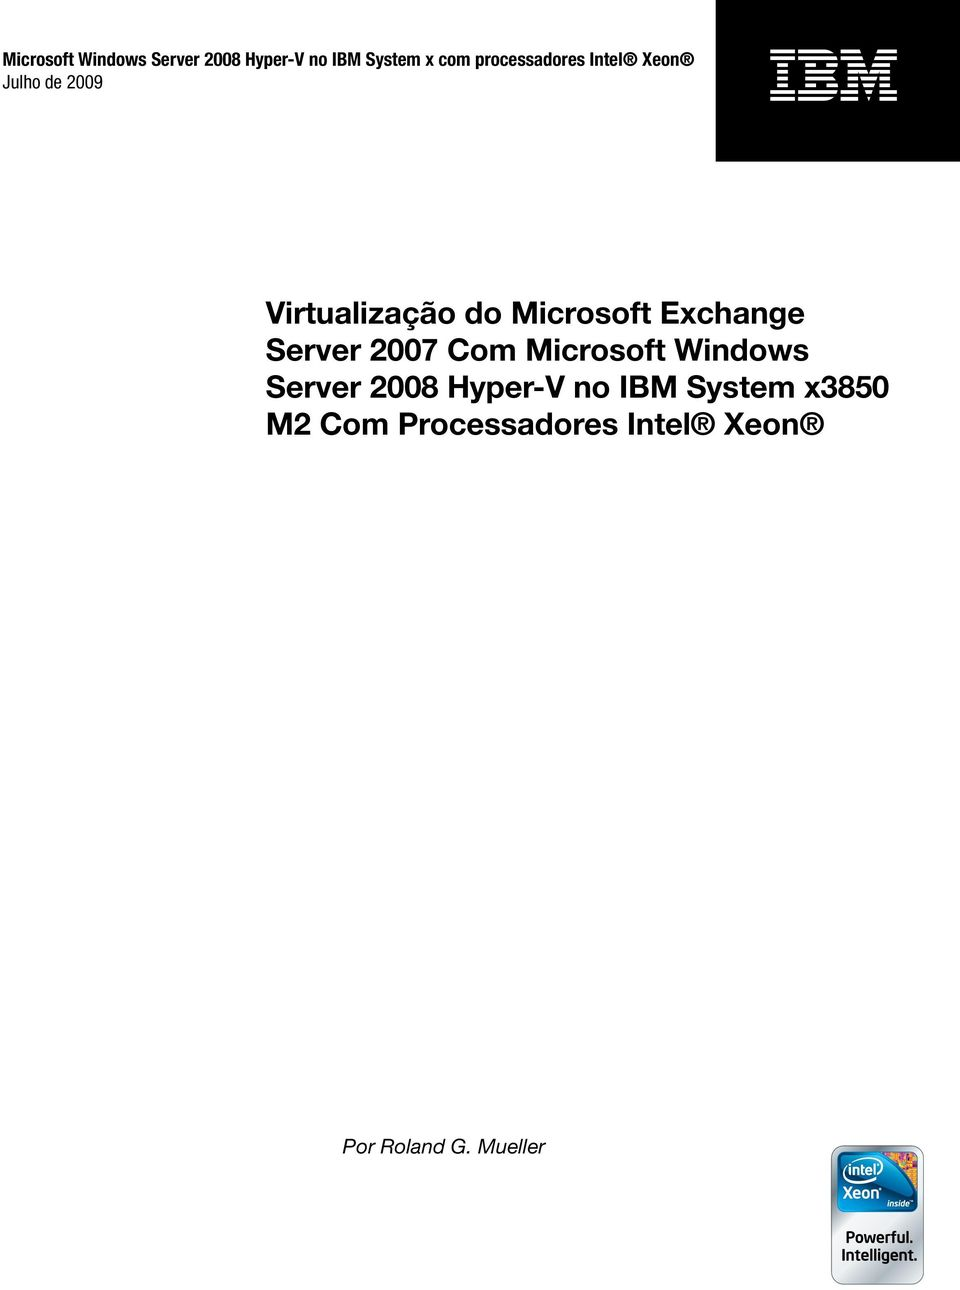 Microsoft Exchange Server 2007 Com Microsoft Windows Server 2008